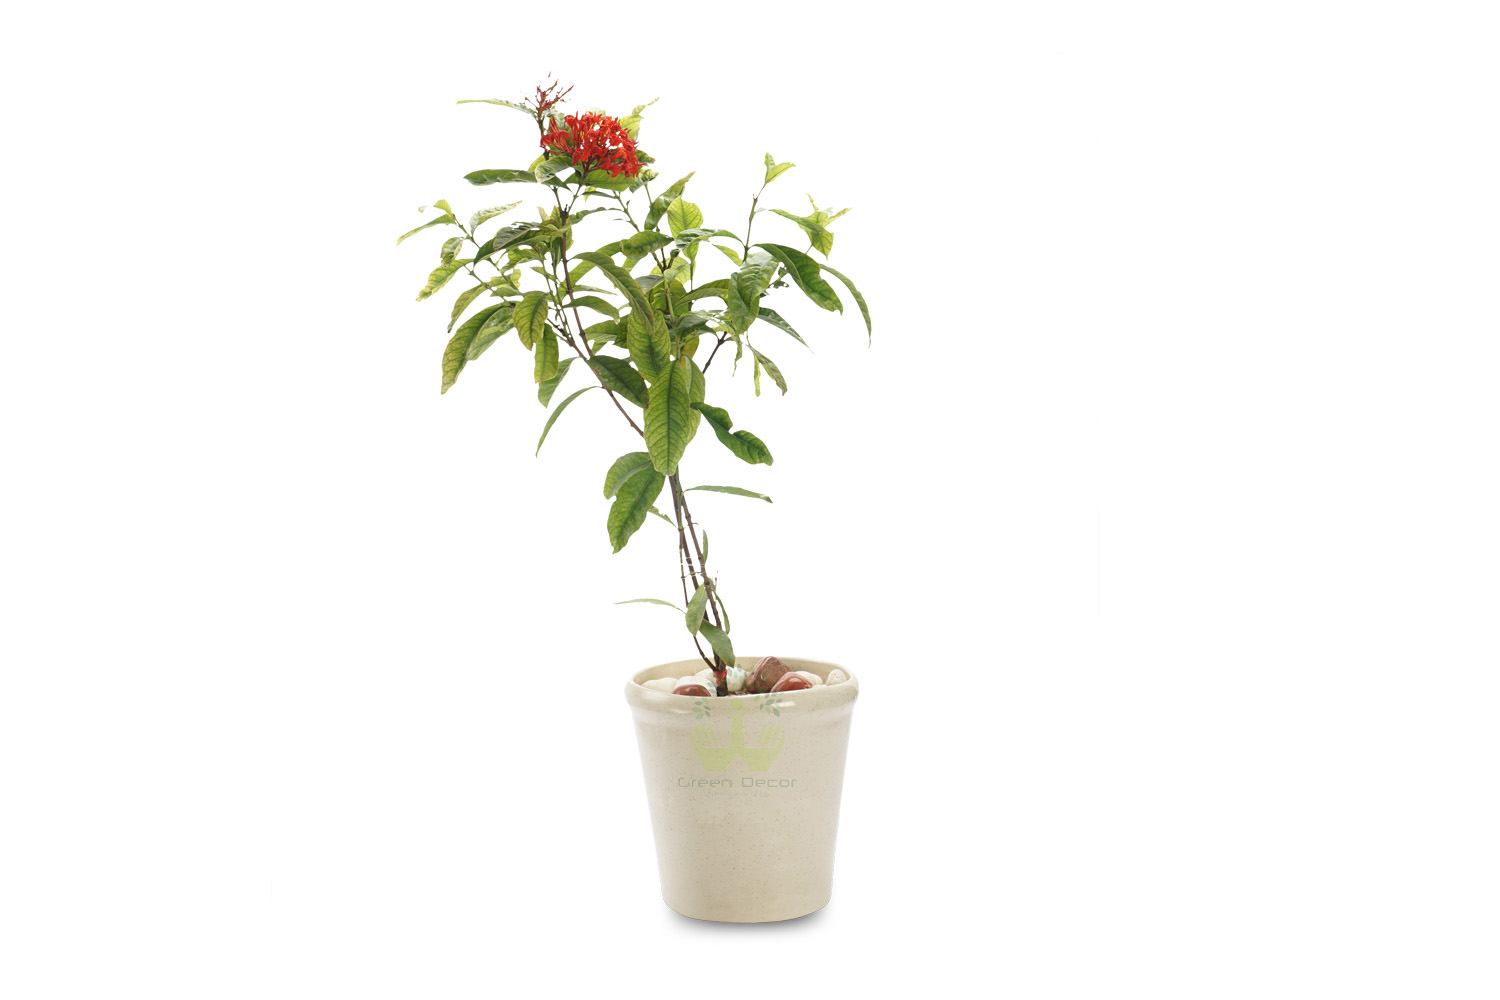 Buy Ixora Plant Front View, White Pots and Seeds in Delhi NCR by the best online nursery shop Greendecor.